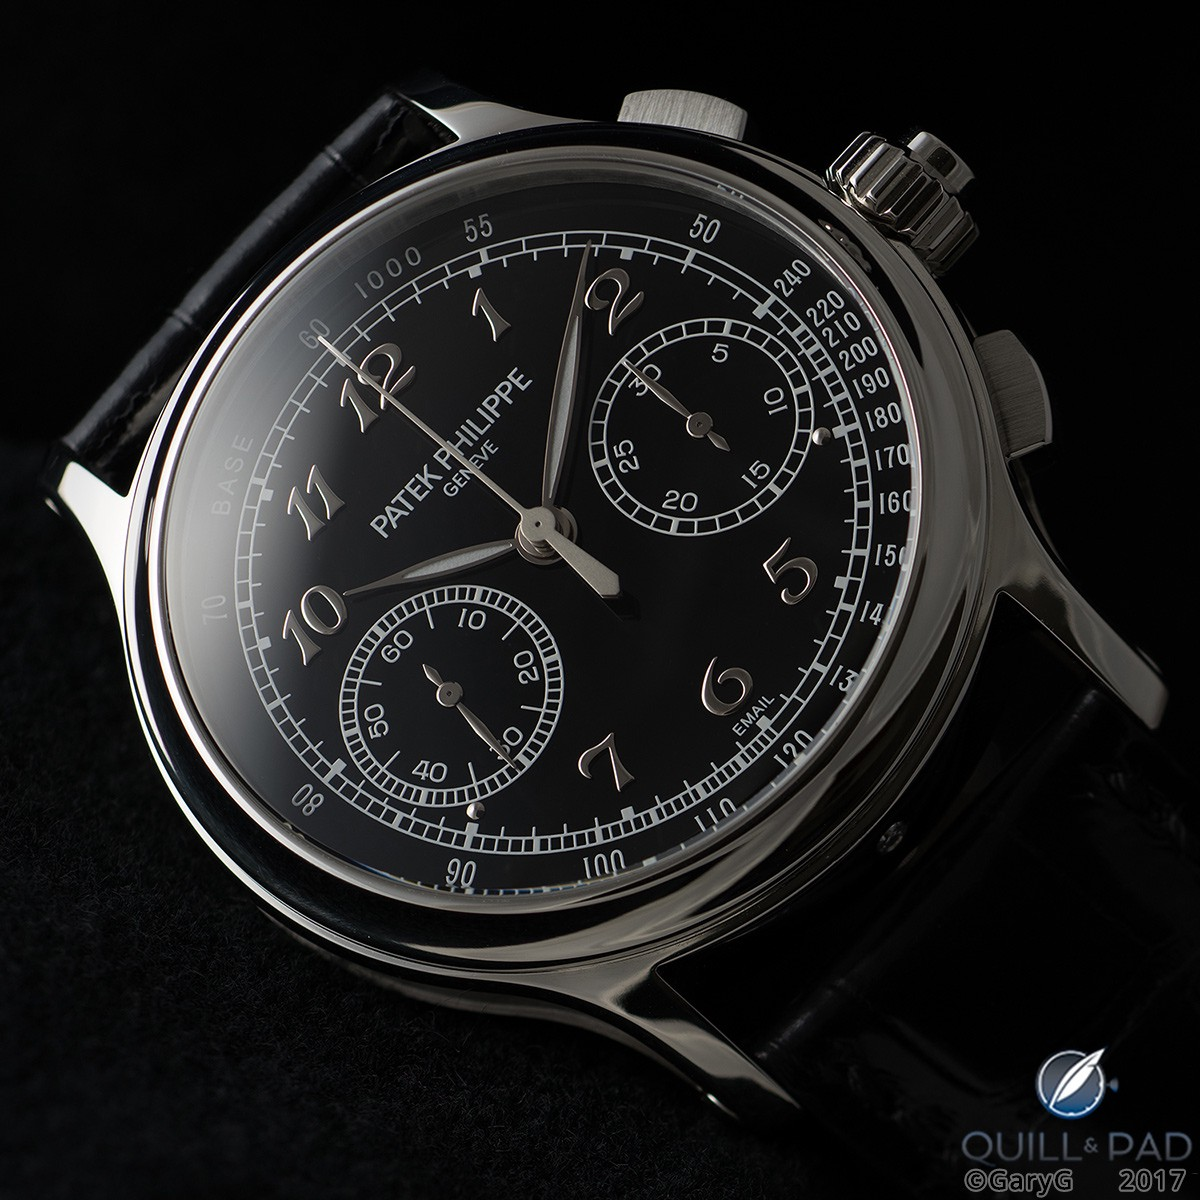 Dial side of the Patek Philippe Reference 5370P